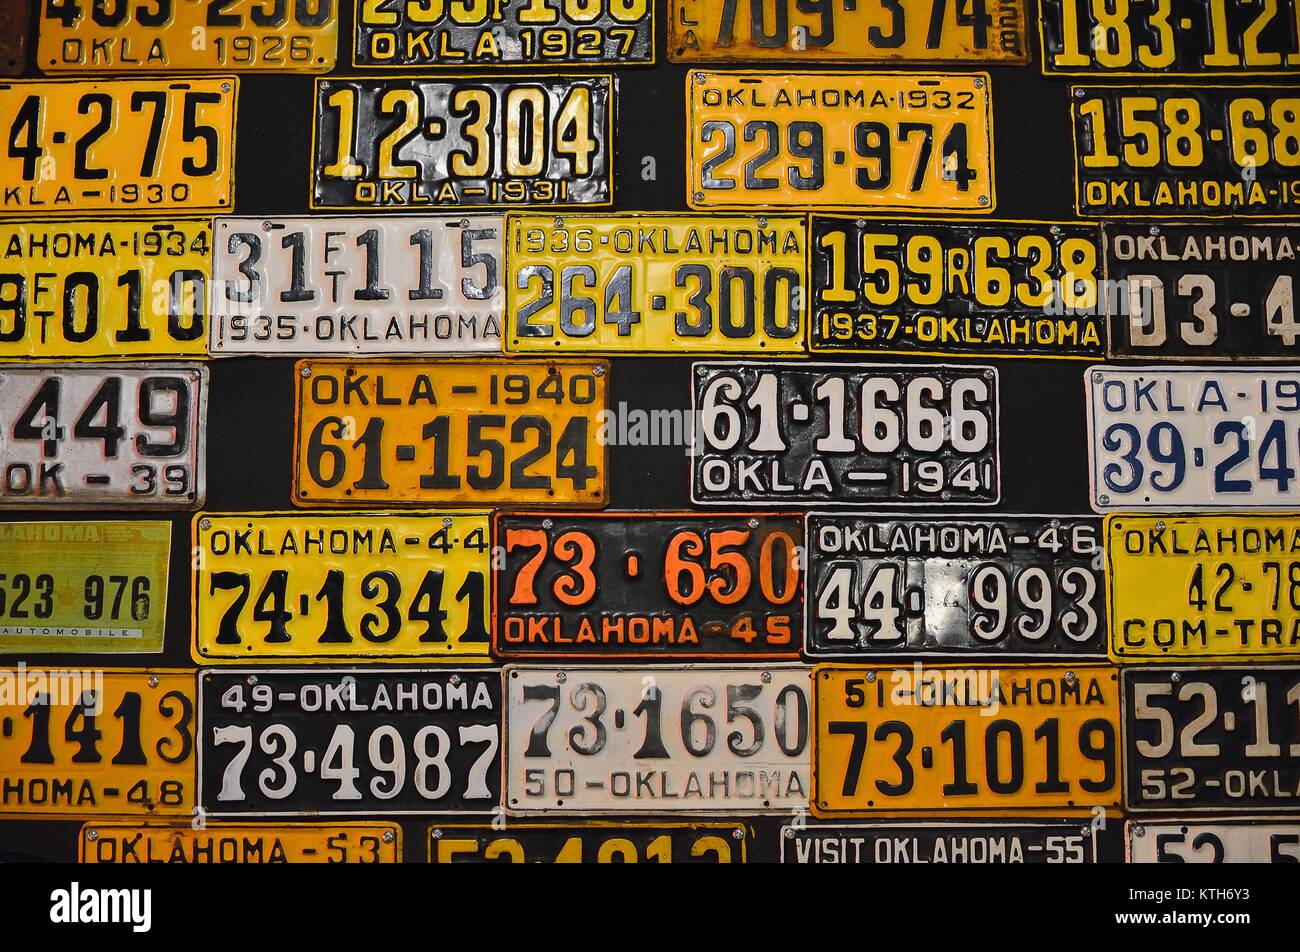 American License Plates Stock Photos & American License Plates Stock ...